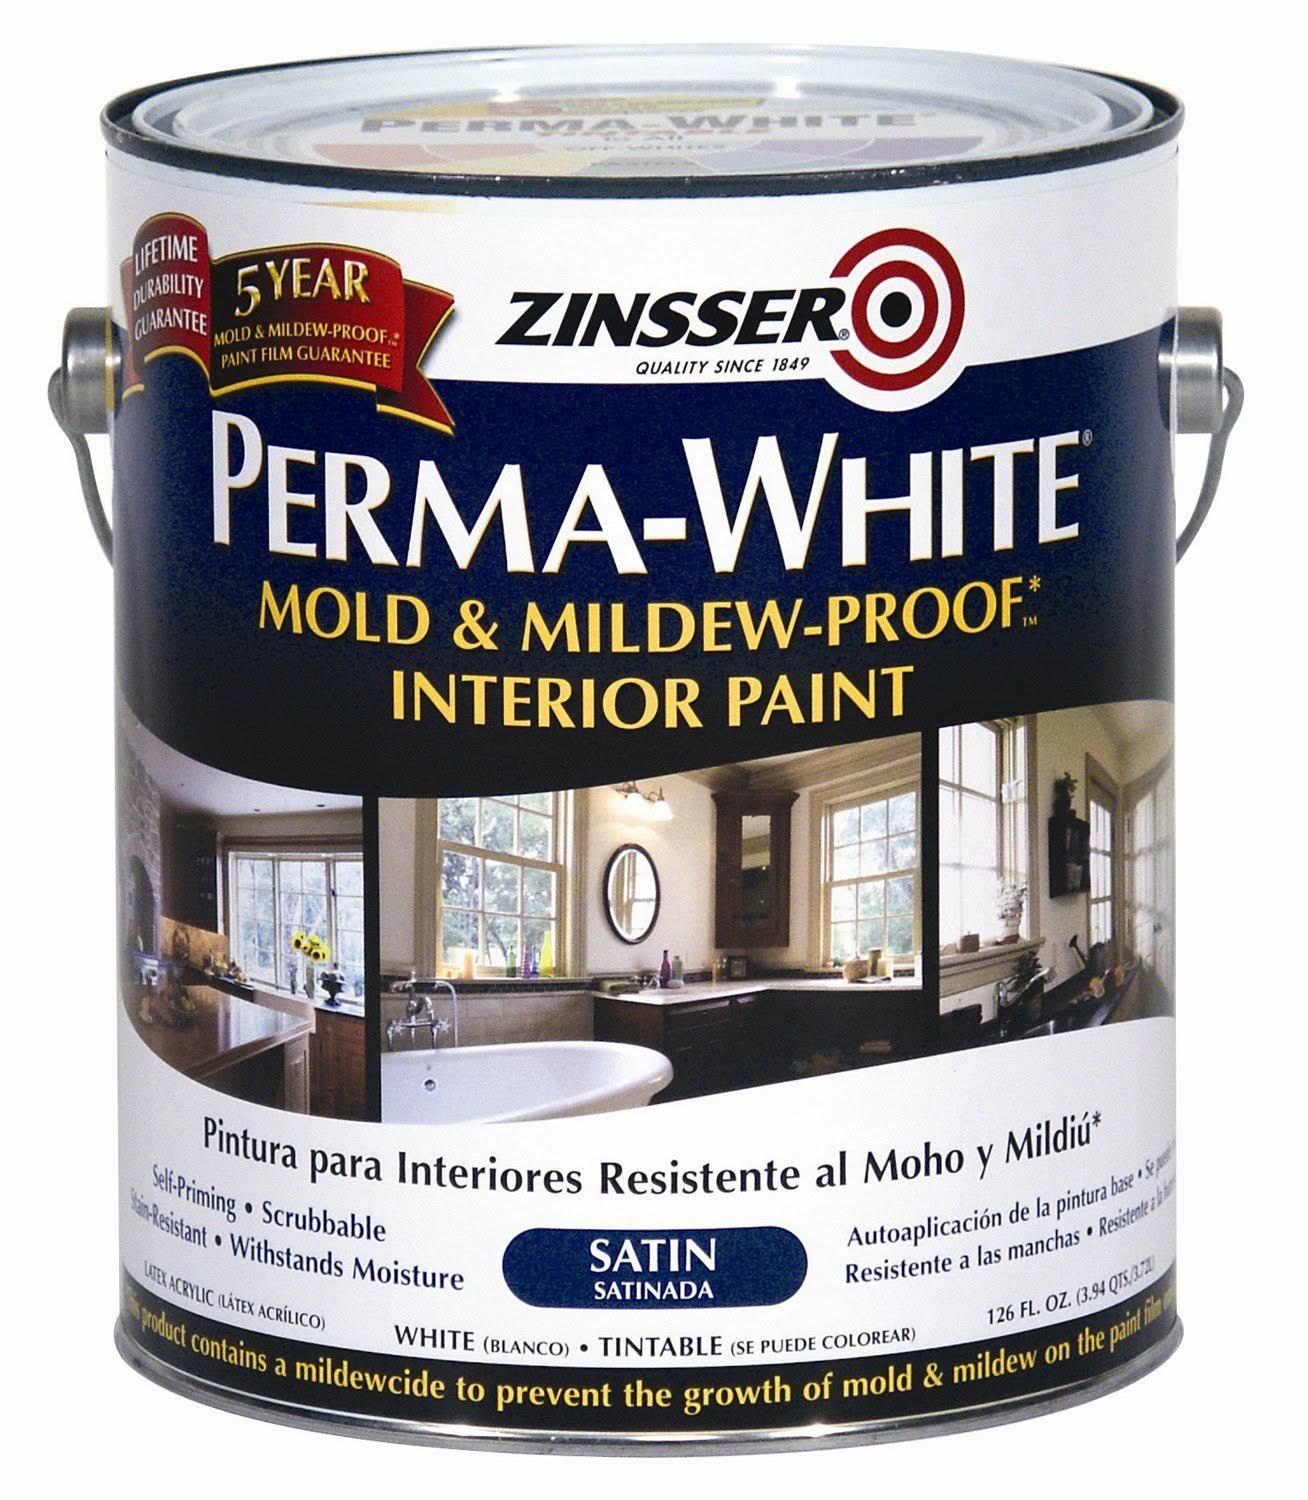 Zinsser Perma White Mold and Mildew Proof Interior Paint - Satin White, 1 Gallon